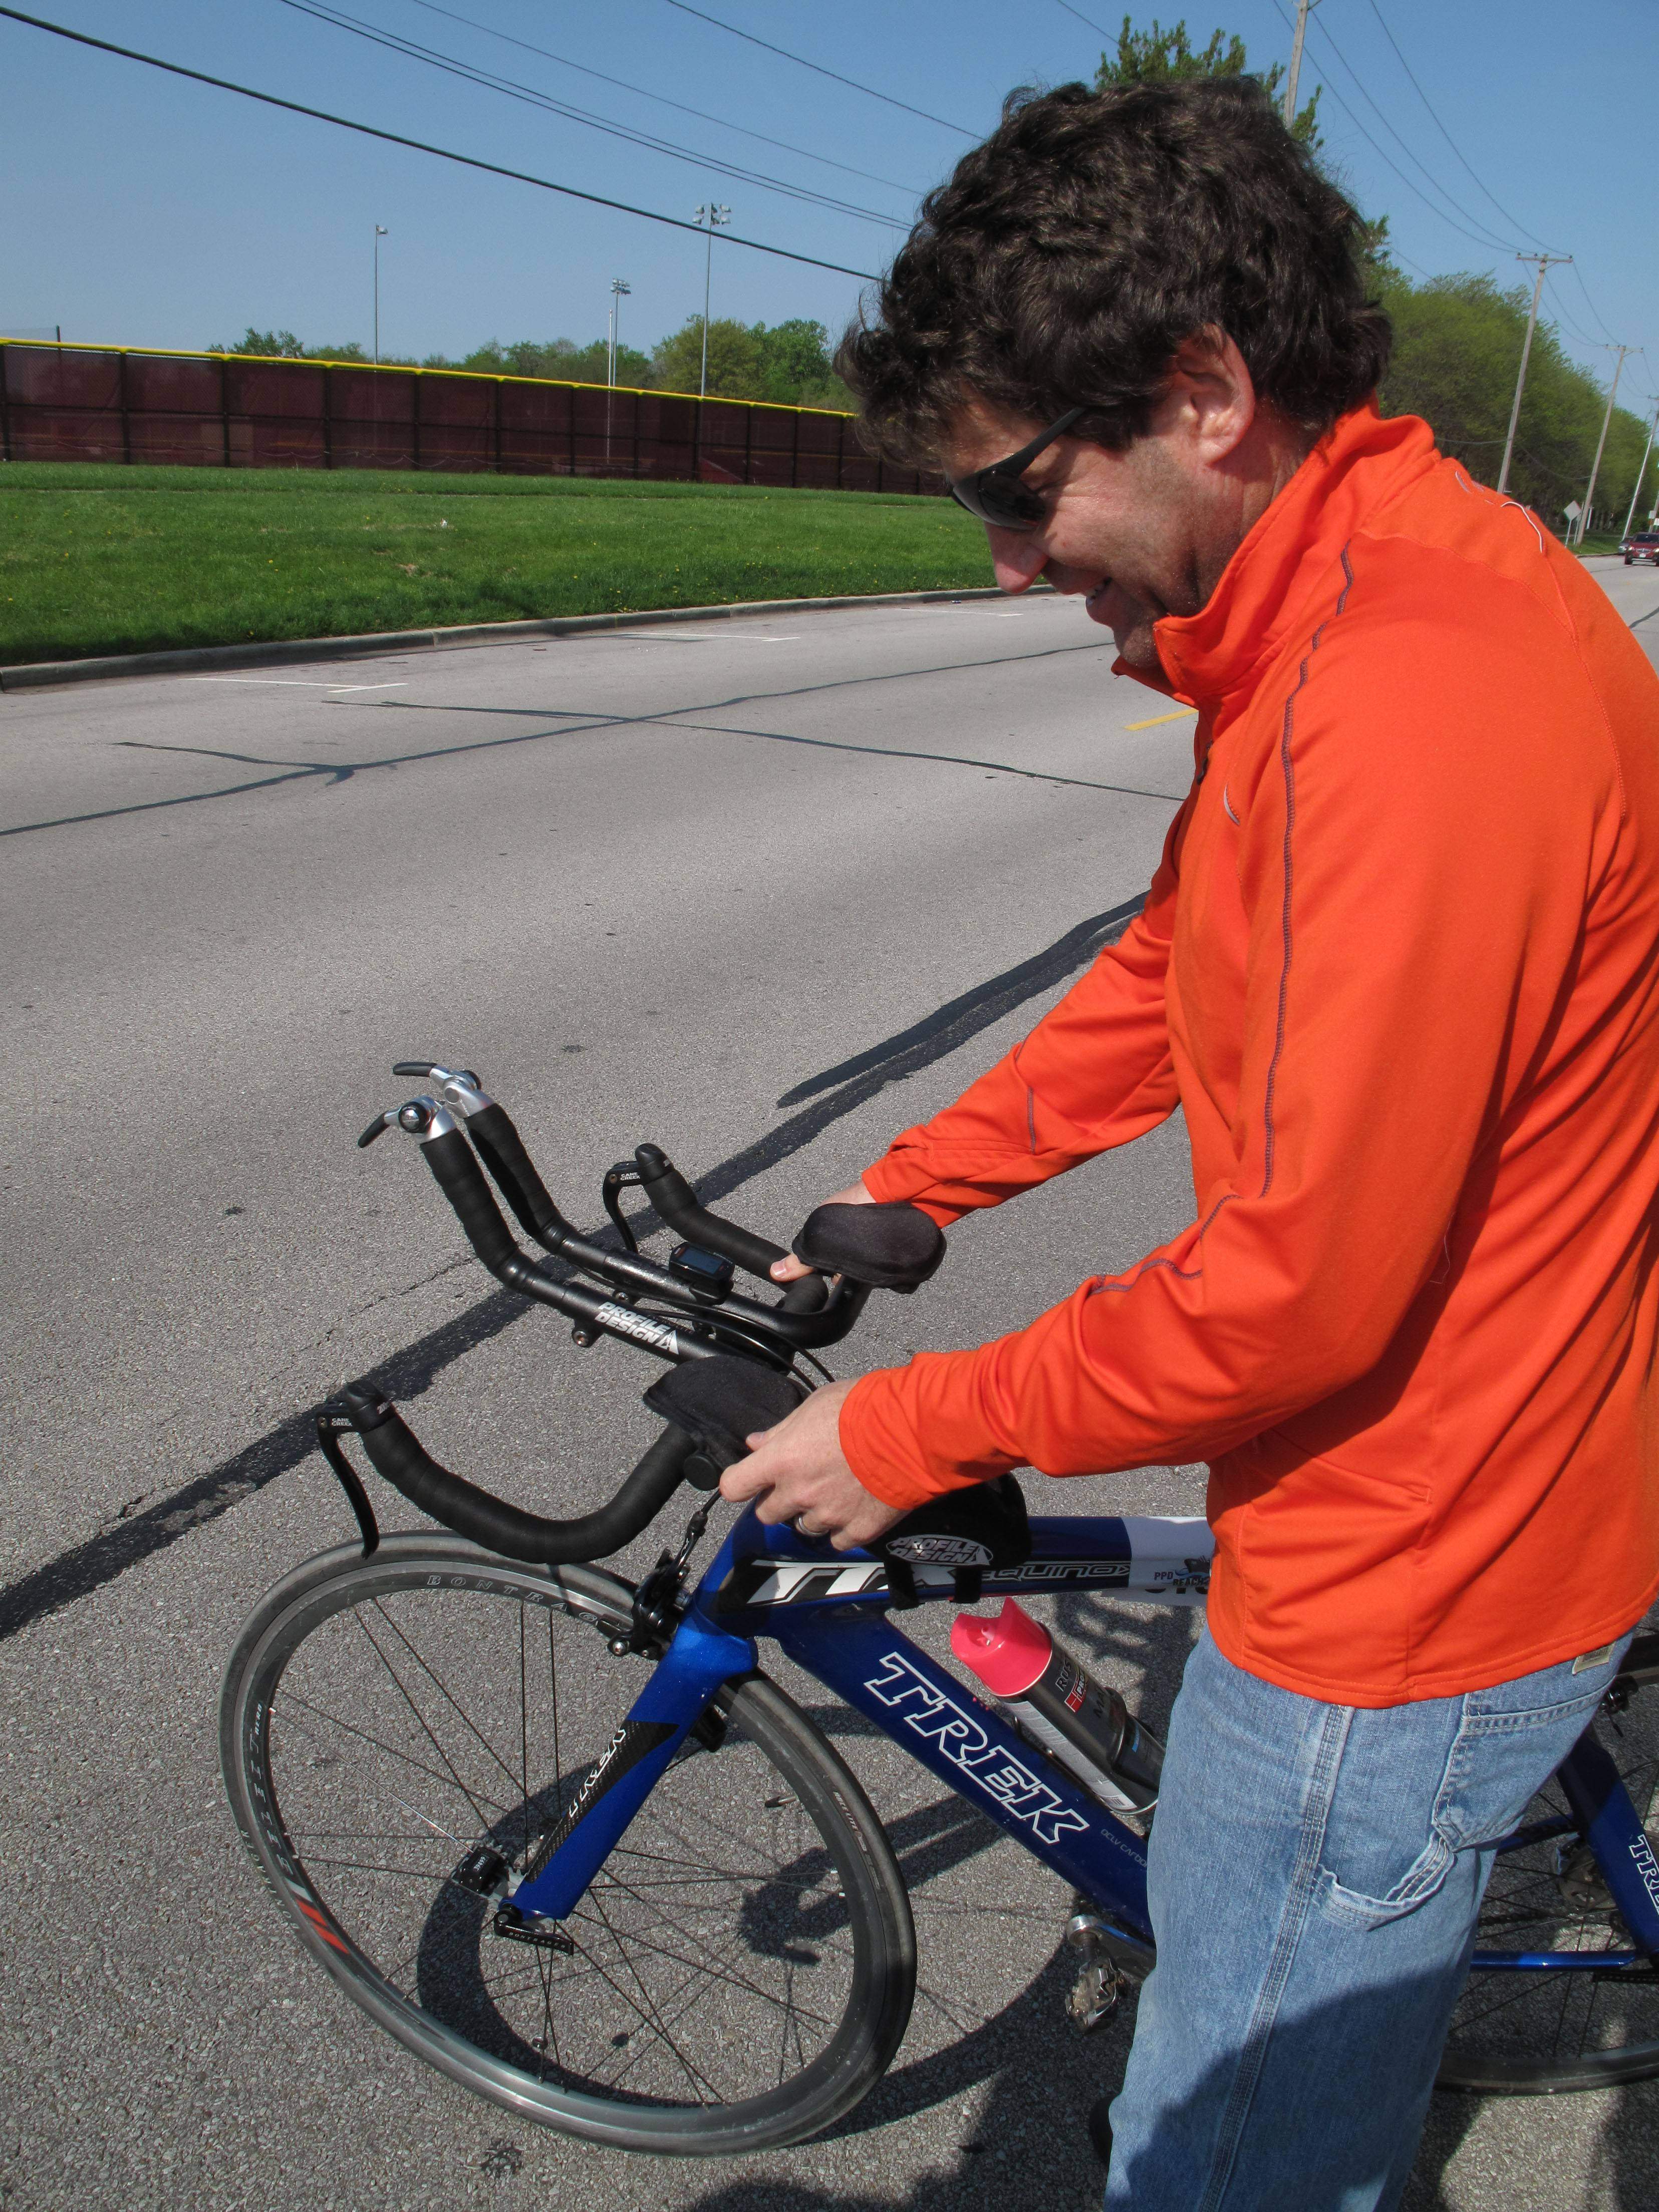 Craig Bixler, one of the race directors for the Edward Hospital Naperville Marathon, studies a device called a Jones Counter attached to his bicycle to measure and certify the course for the second annual race.